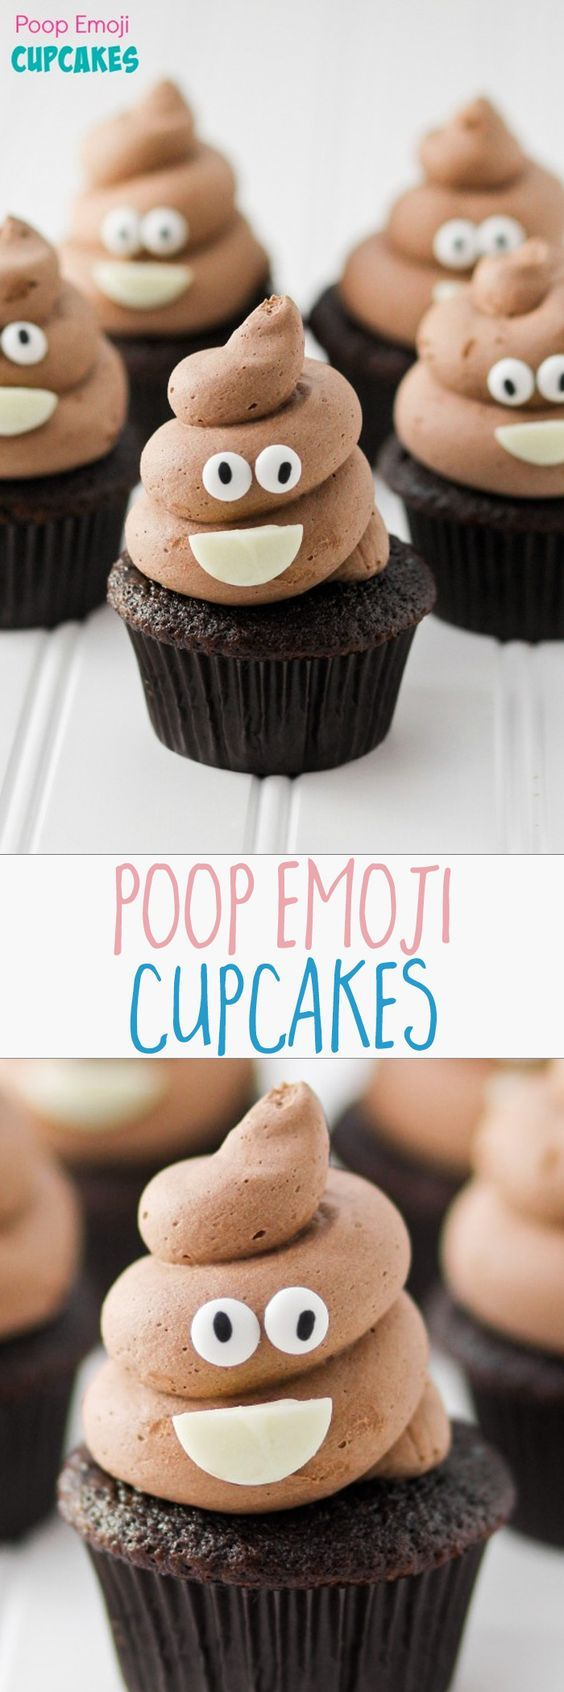 POOP EMOJI CUPCAKES -- pin to make these for the kids. They are going to flip over these. Hilarious and so easy!